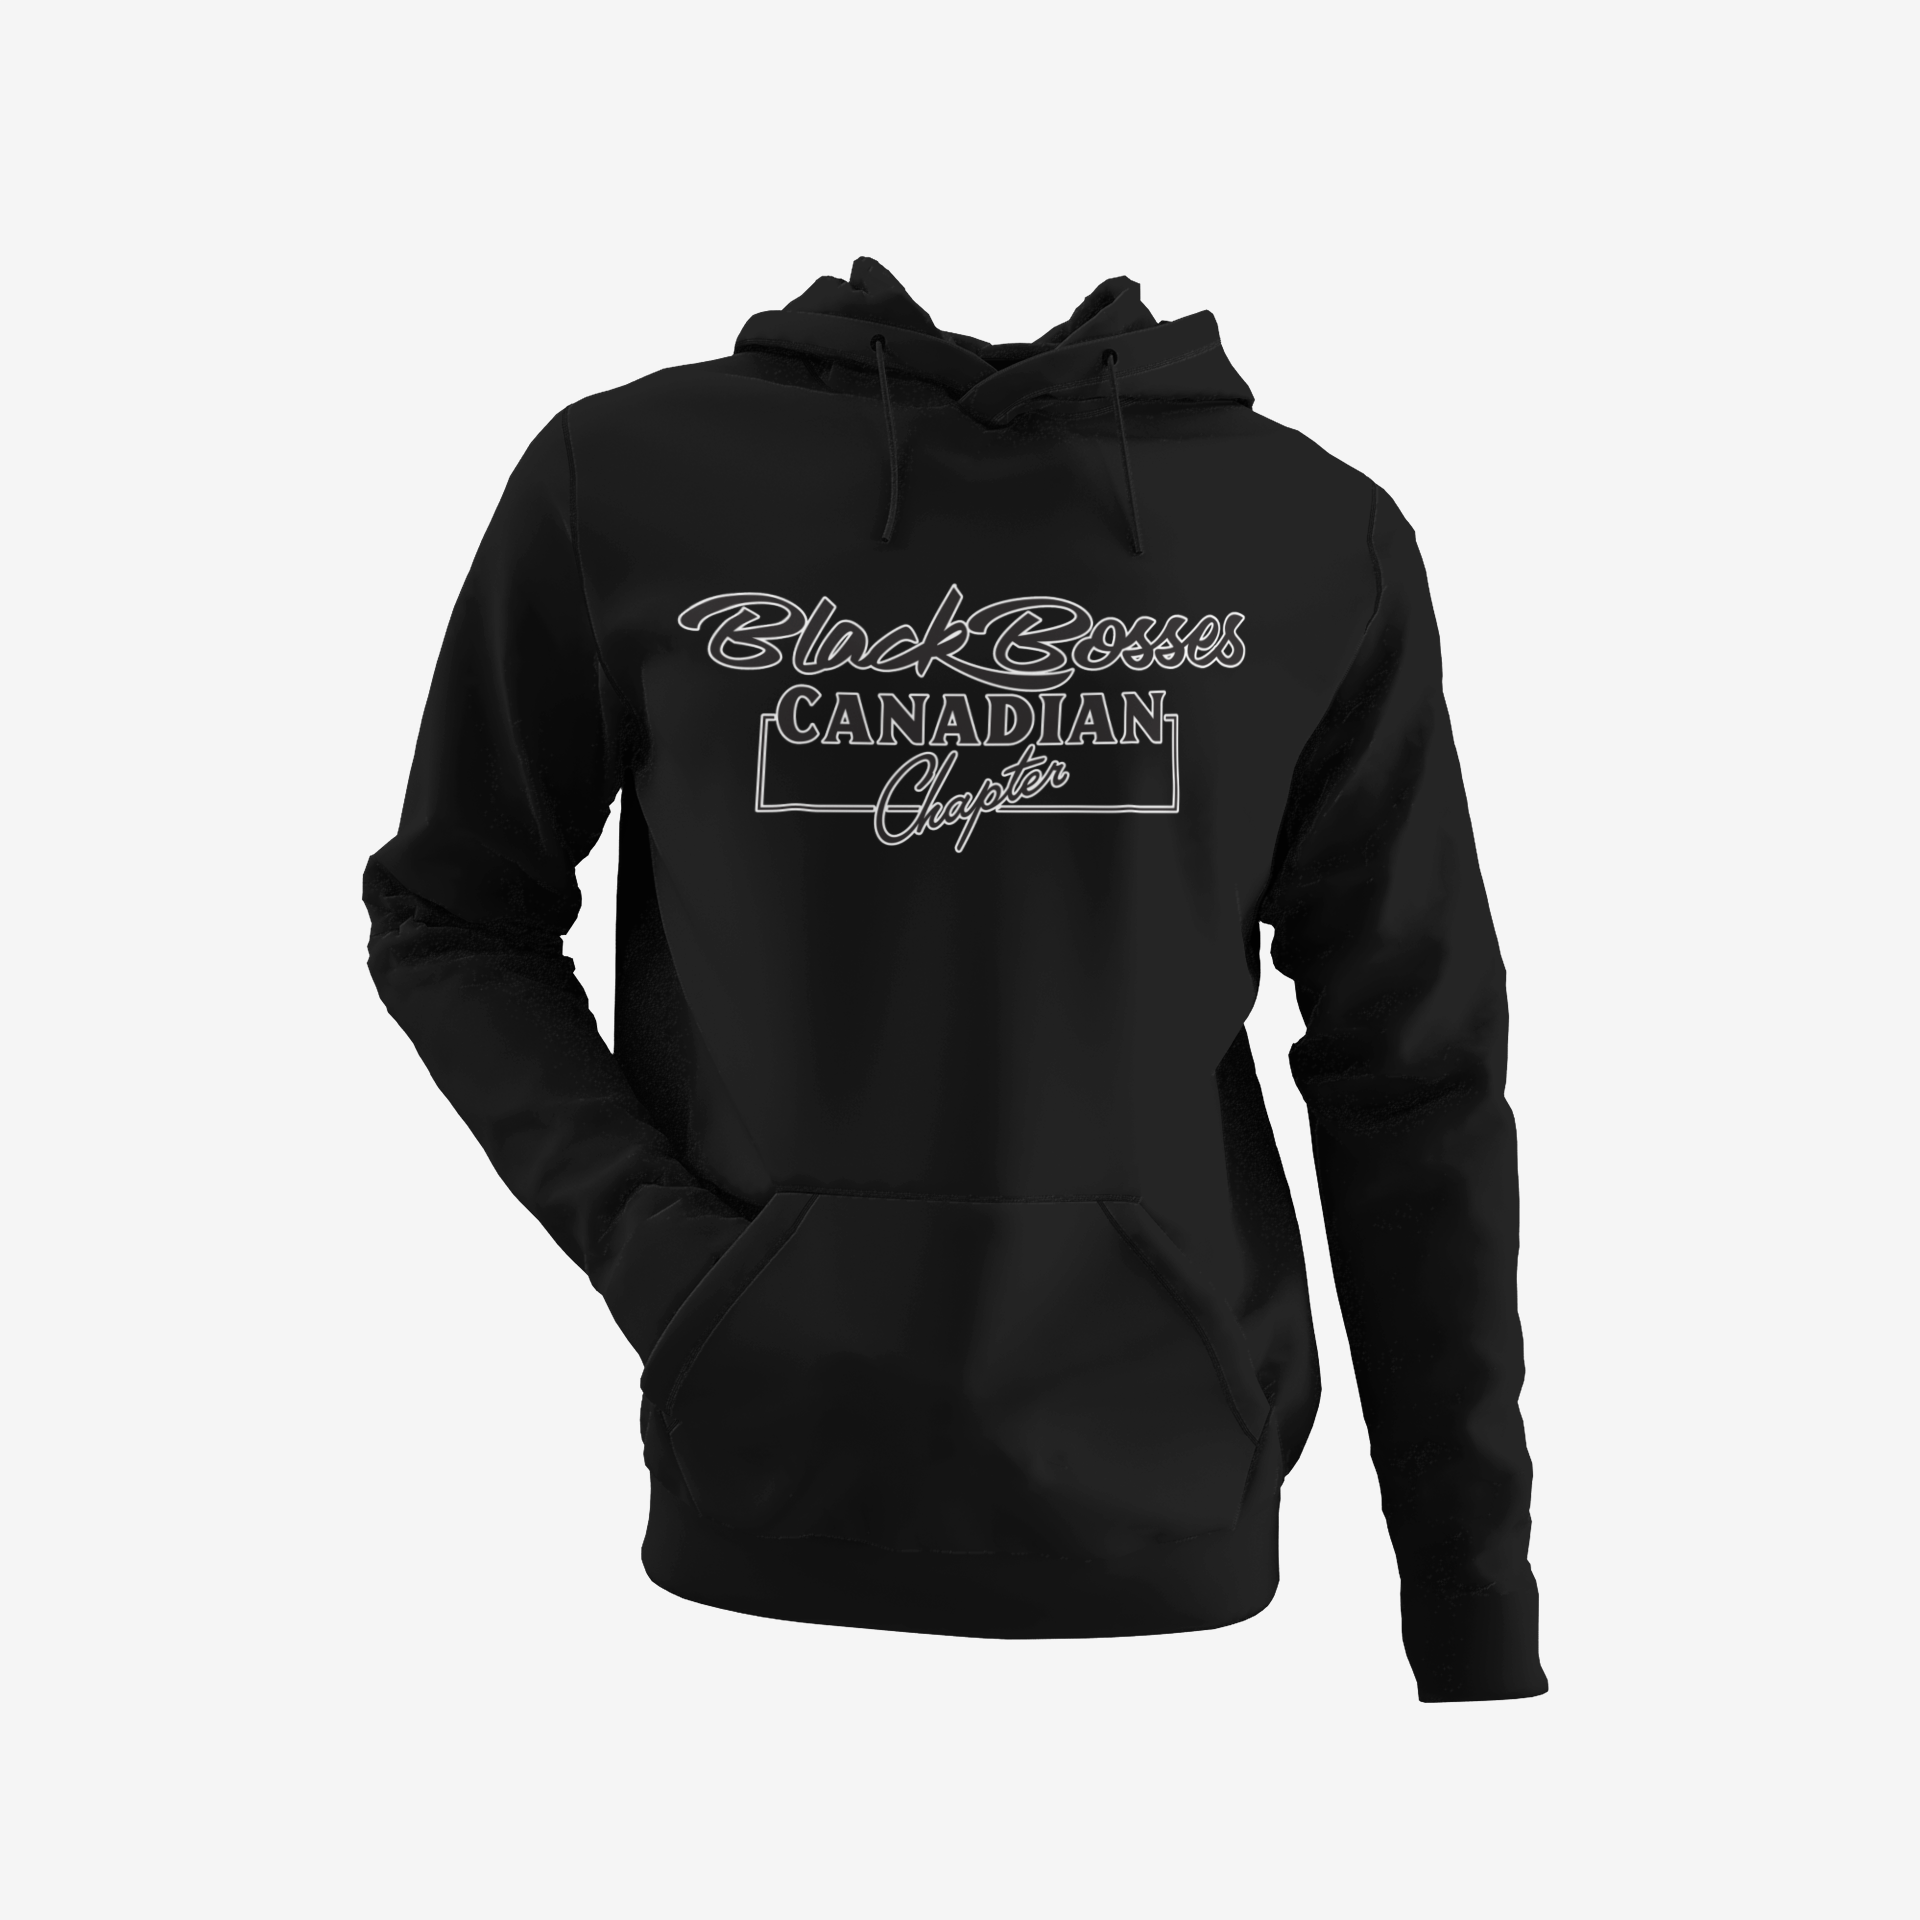 GRT - Black Bosses Canadian Hoodie Style I